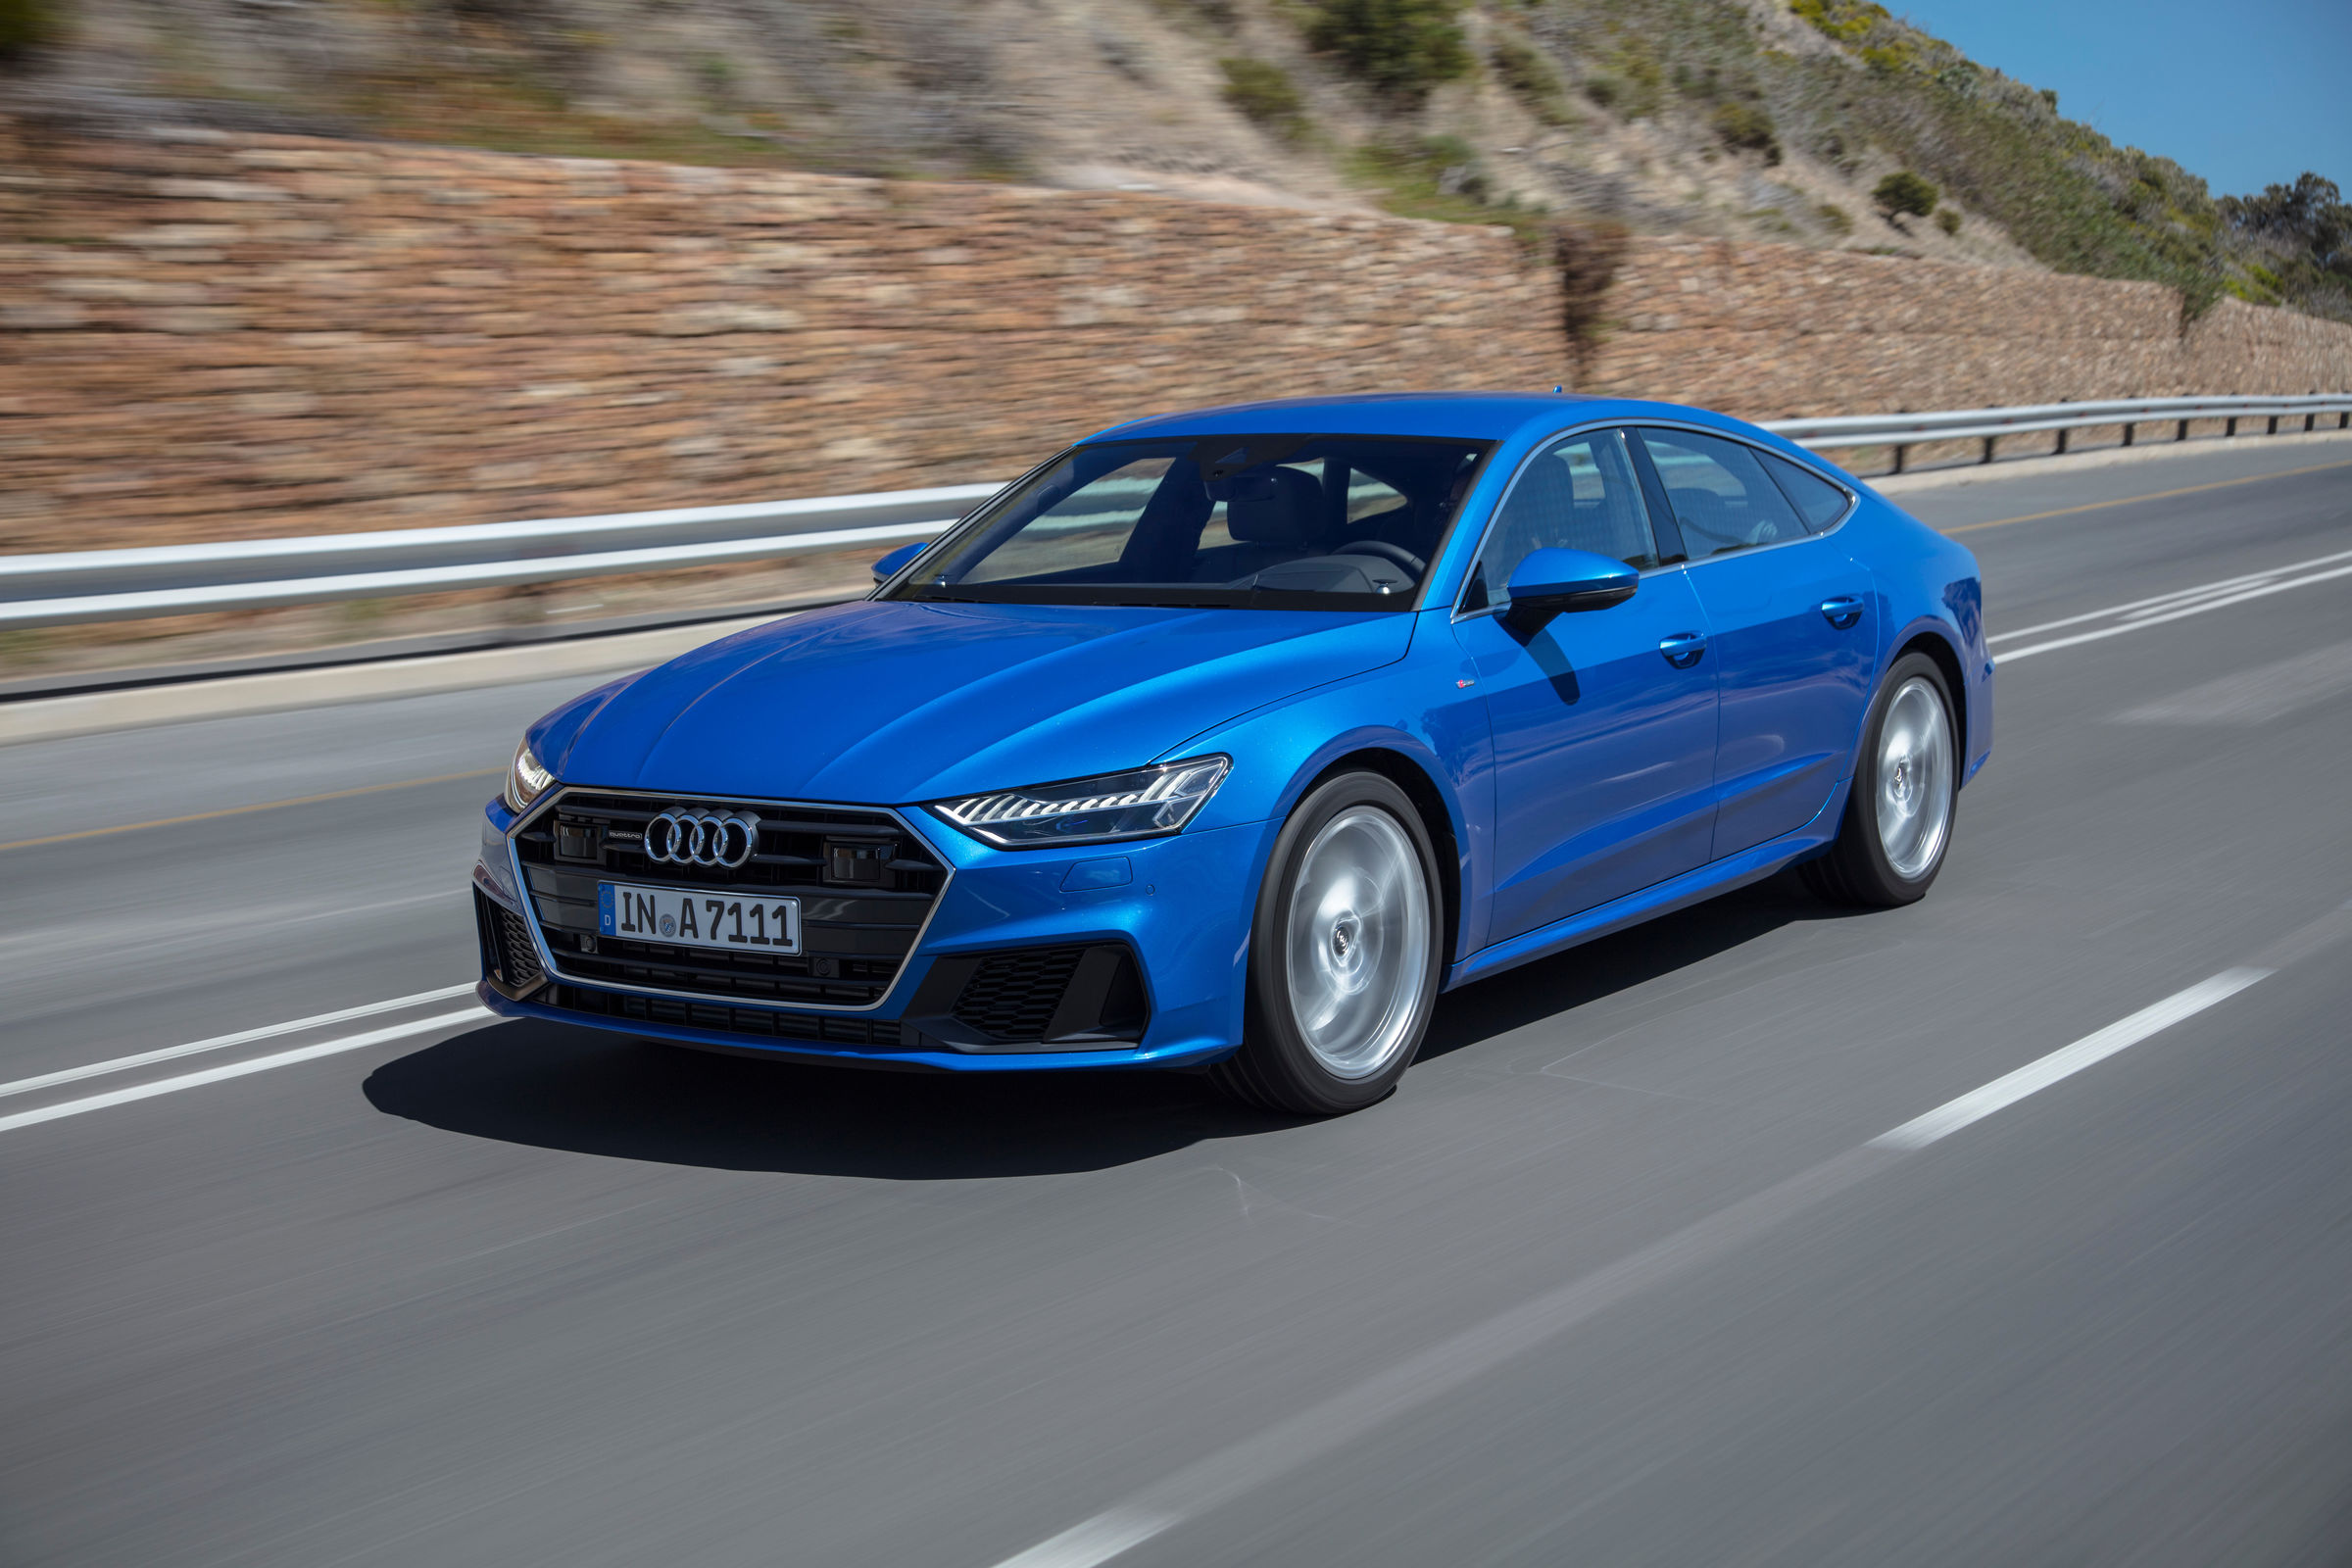 Garage Audi Tours The New Audi A7 Sportback Sportiness In Its Most Beautiful Form